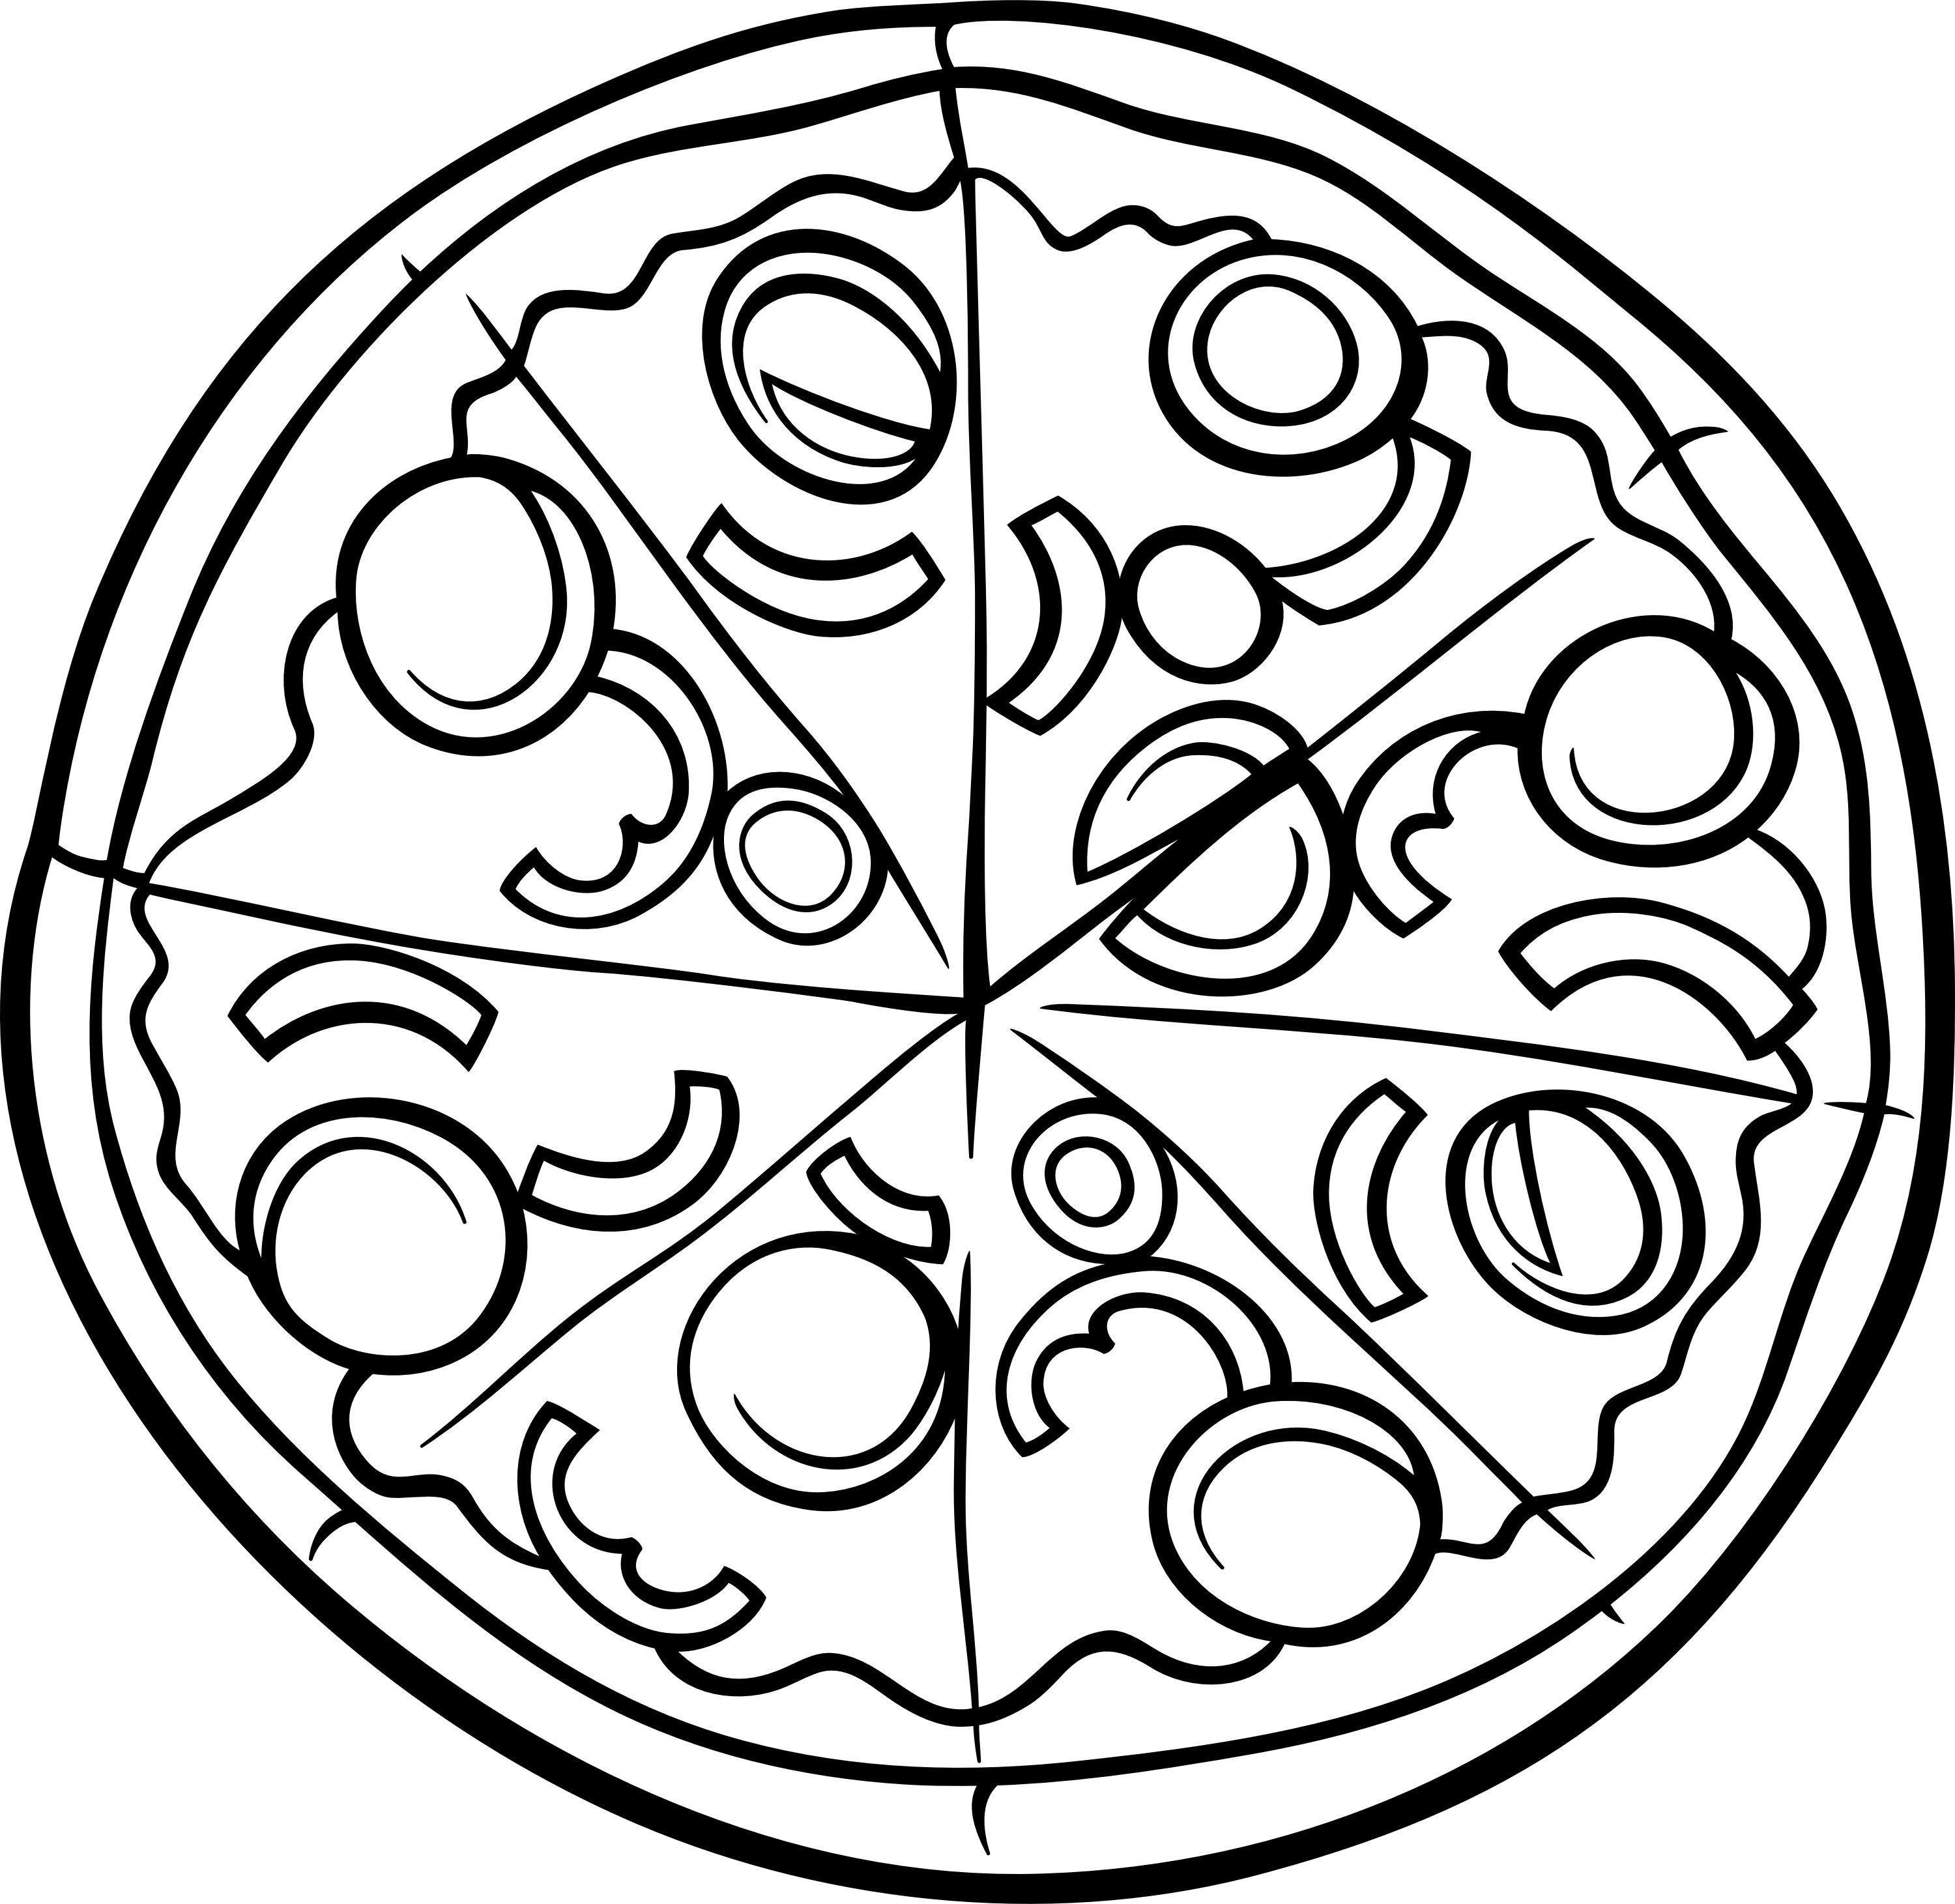 pizza coloring page printable | Food art